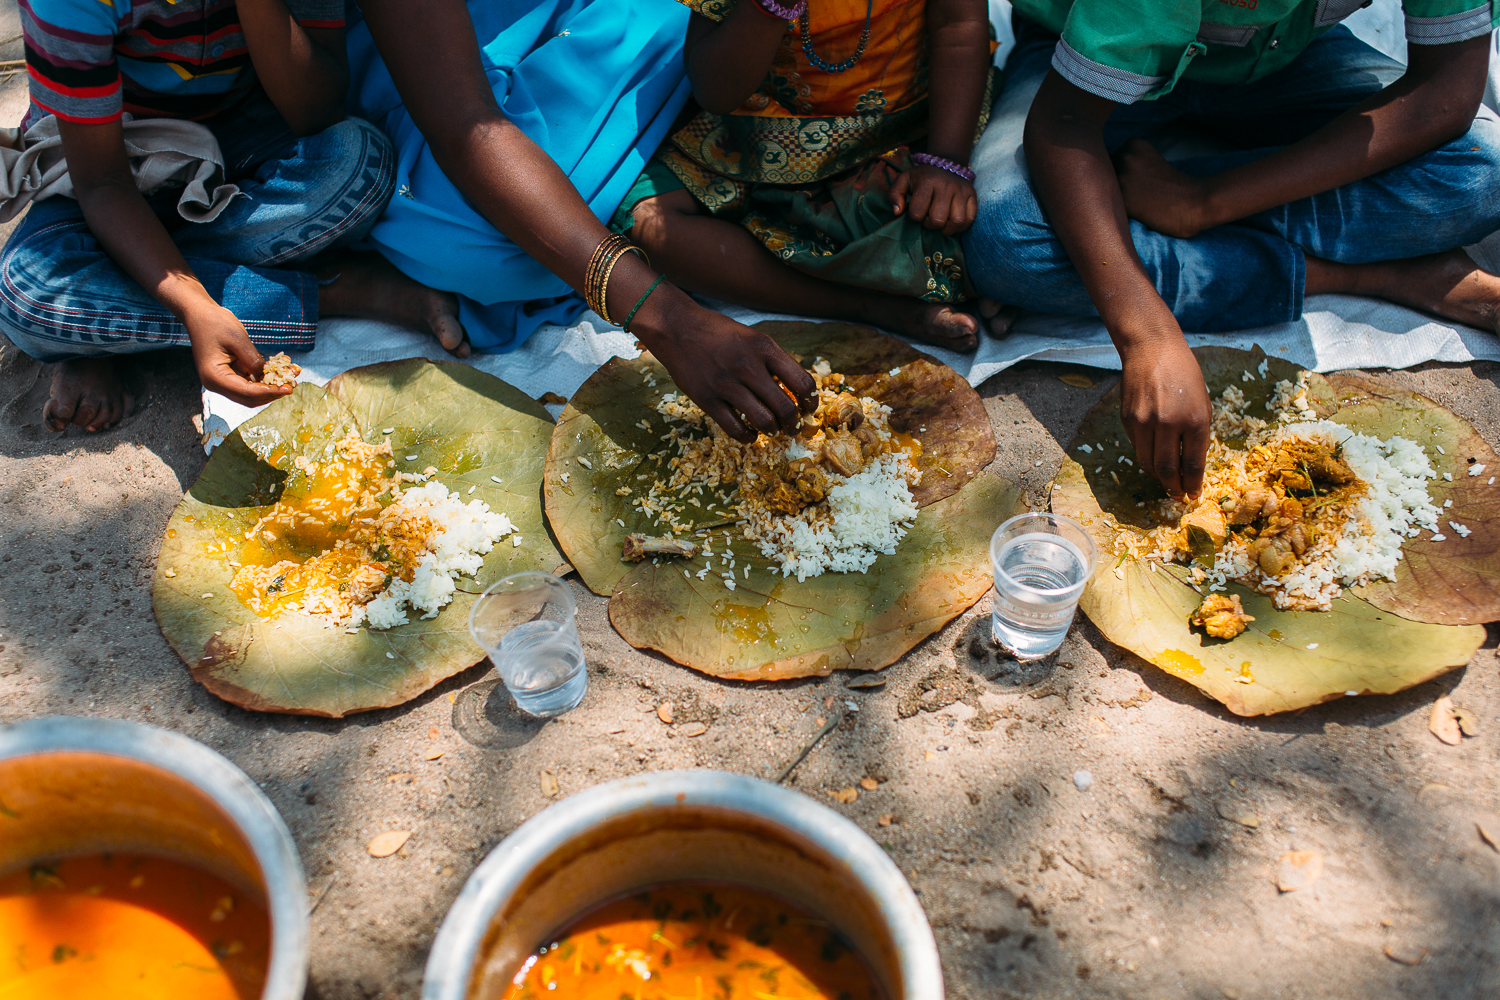 Families eat the chicken and spicy rice together in Vettuvanam, India on March 11, 2016.